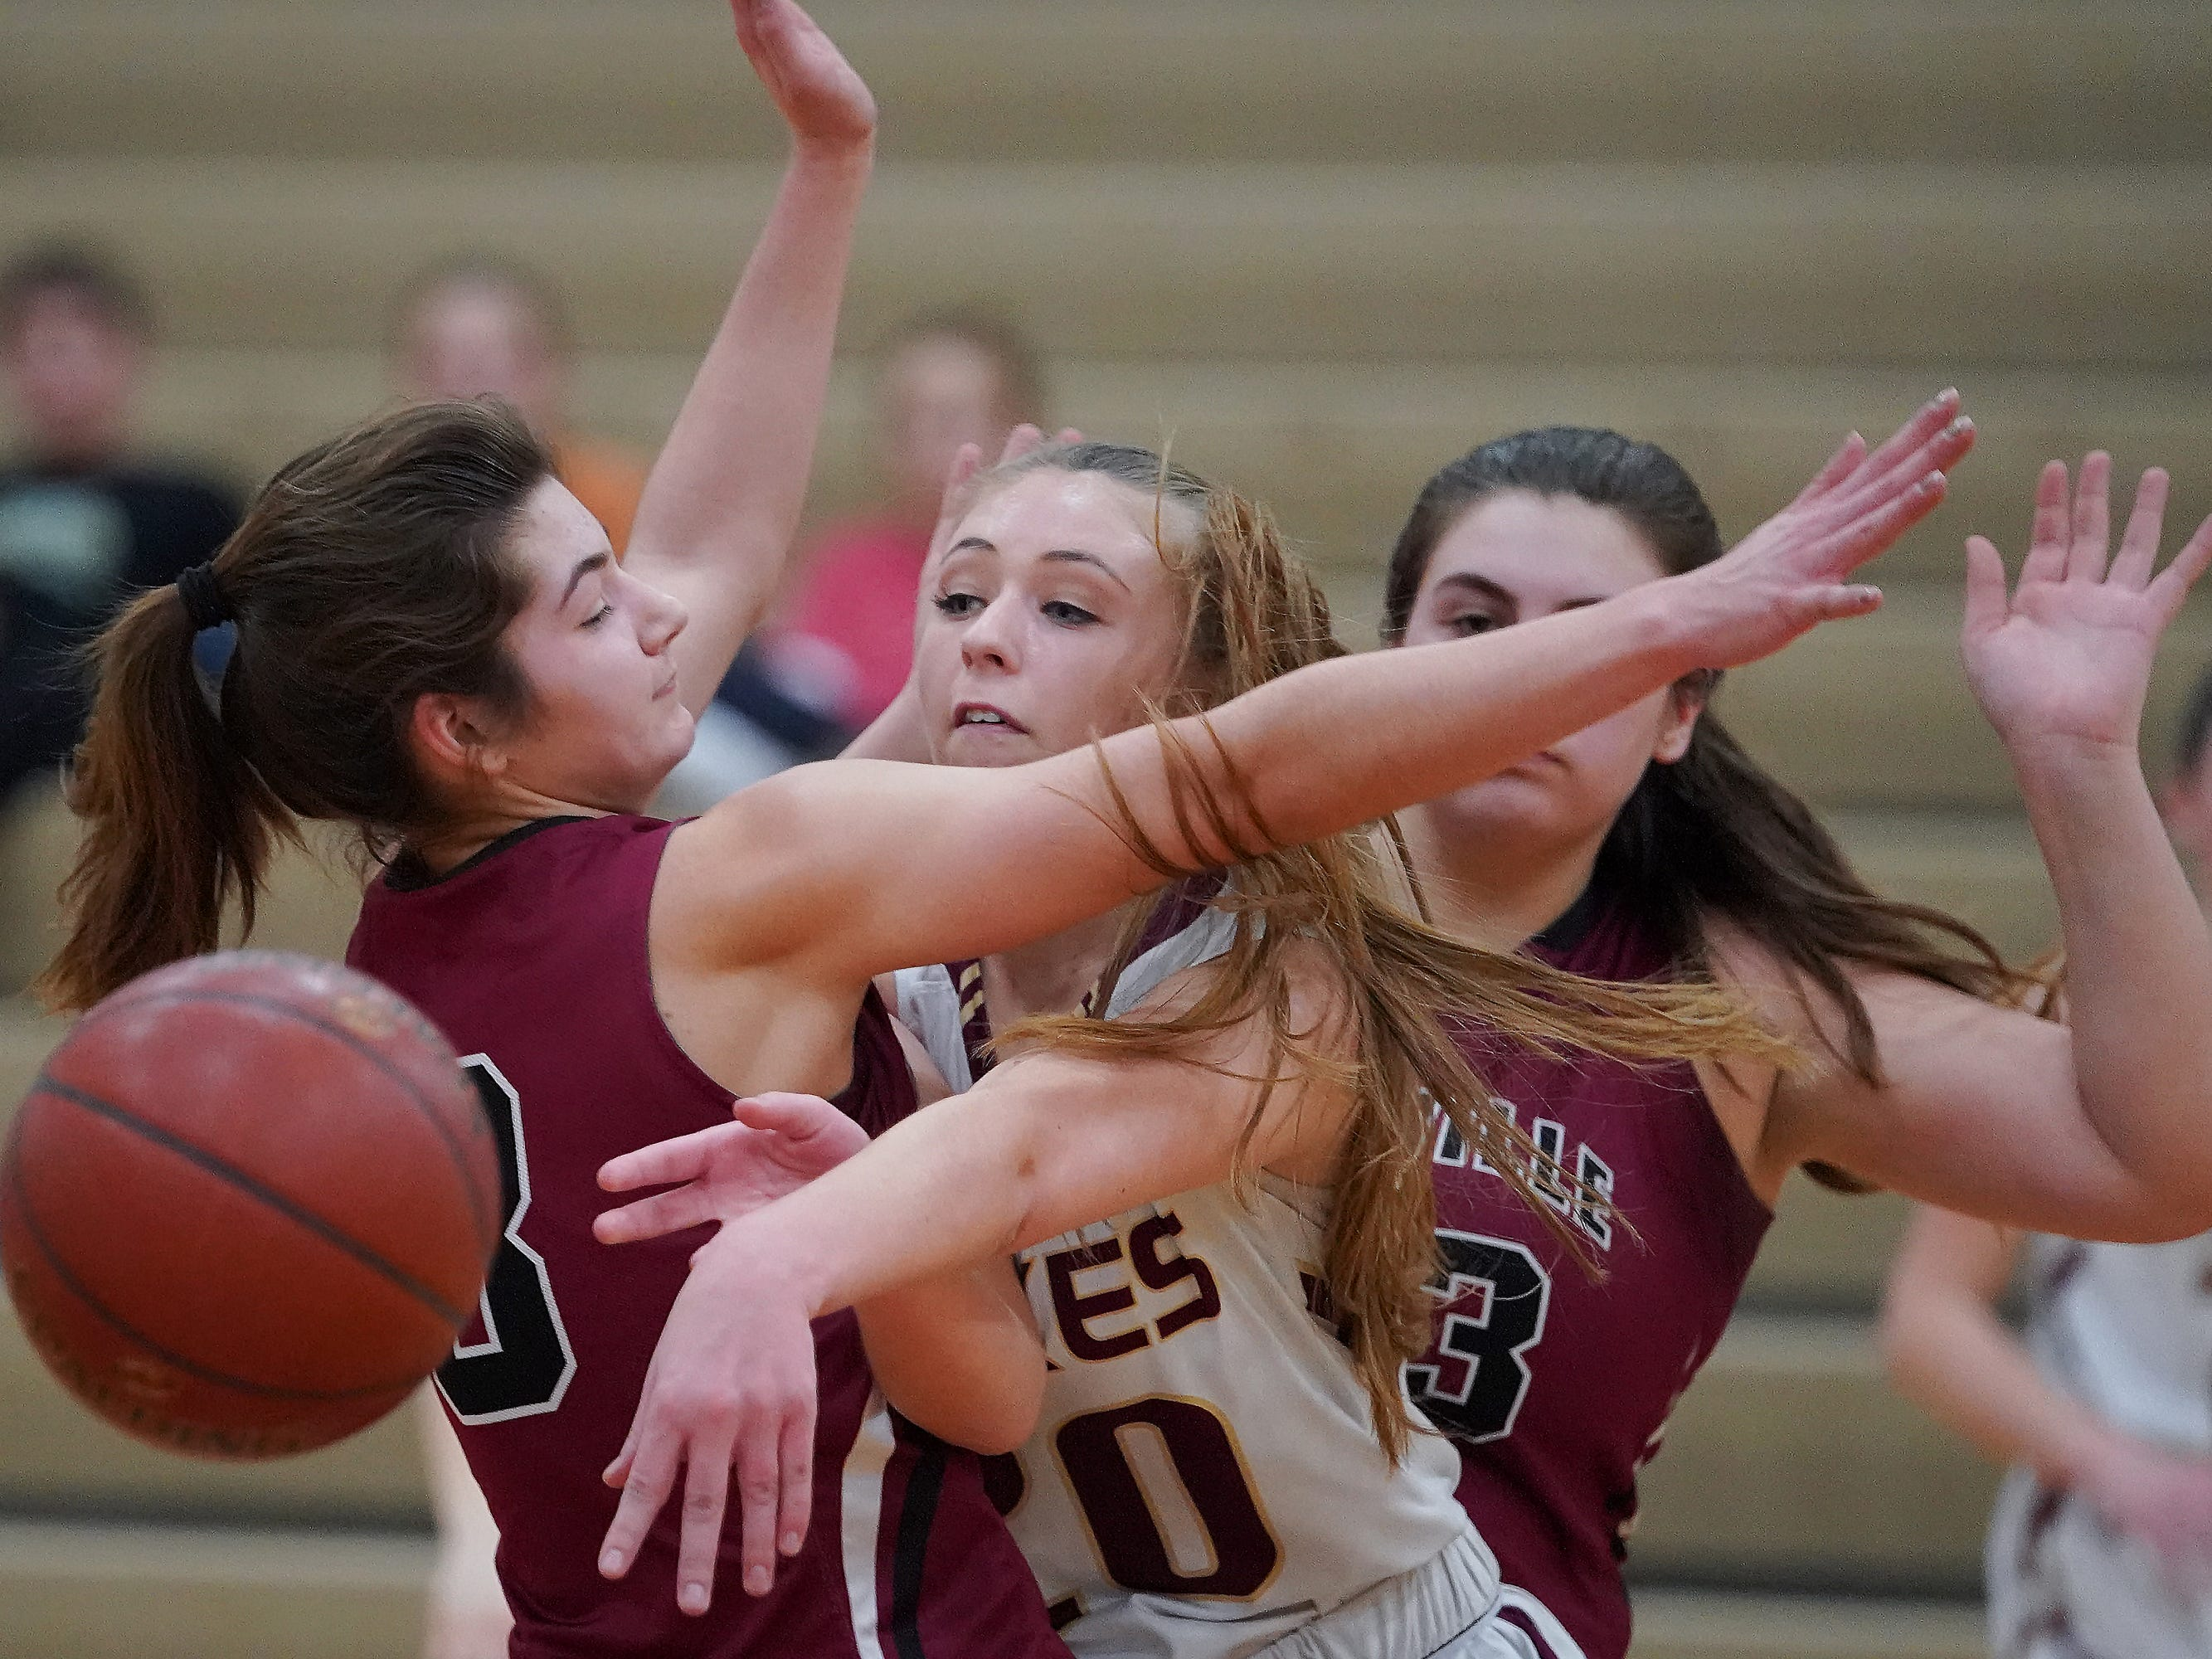 Taylor Lewis (20) of Omro manages to throw a pass while covered by Amber Schraufnagel (3) of Mayville. The Omro Foxes hosted the Mayville Cardinals in a Flyway Conference basketball game Friday evening, January 4, 2019.